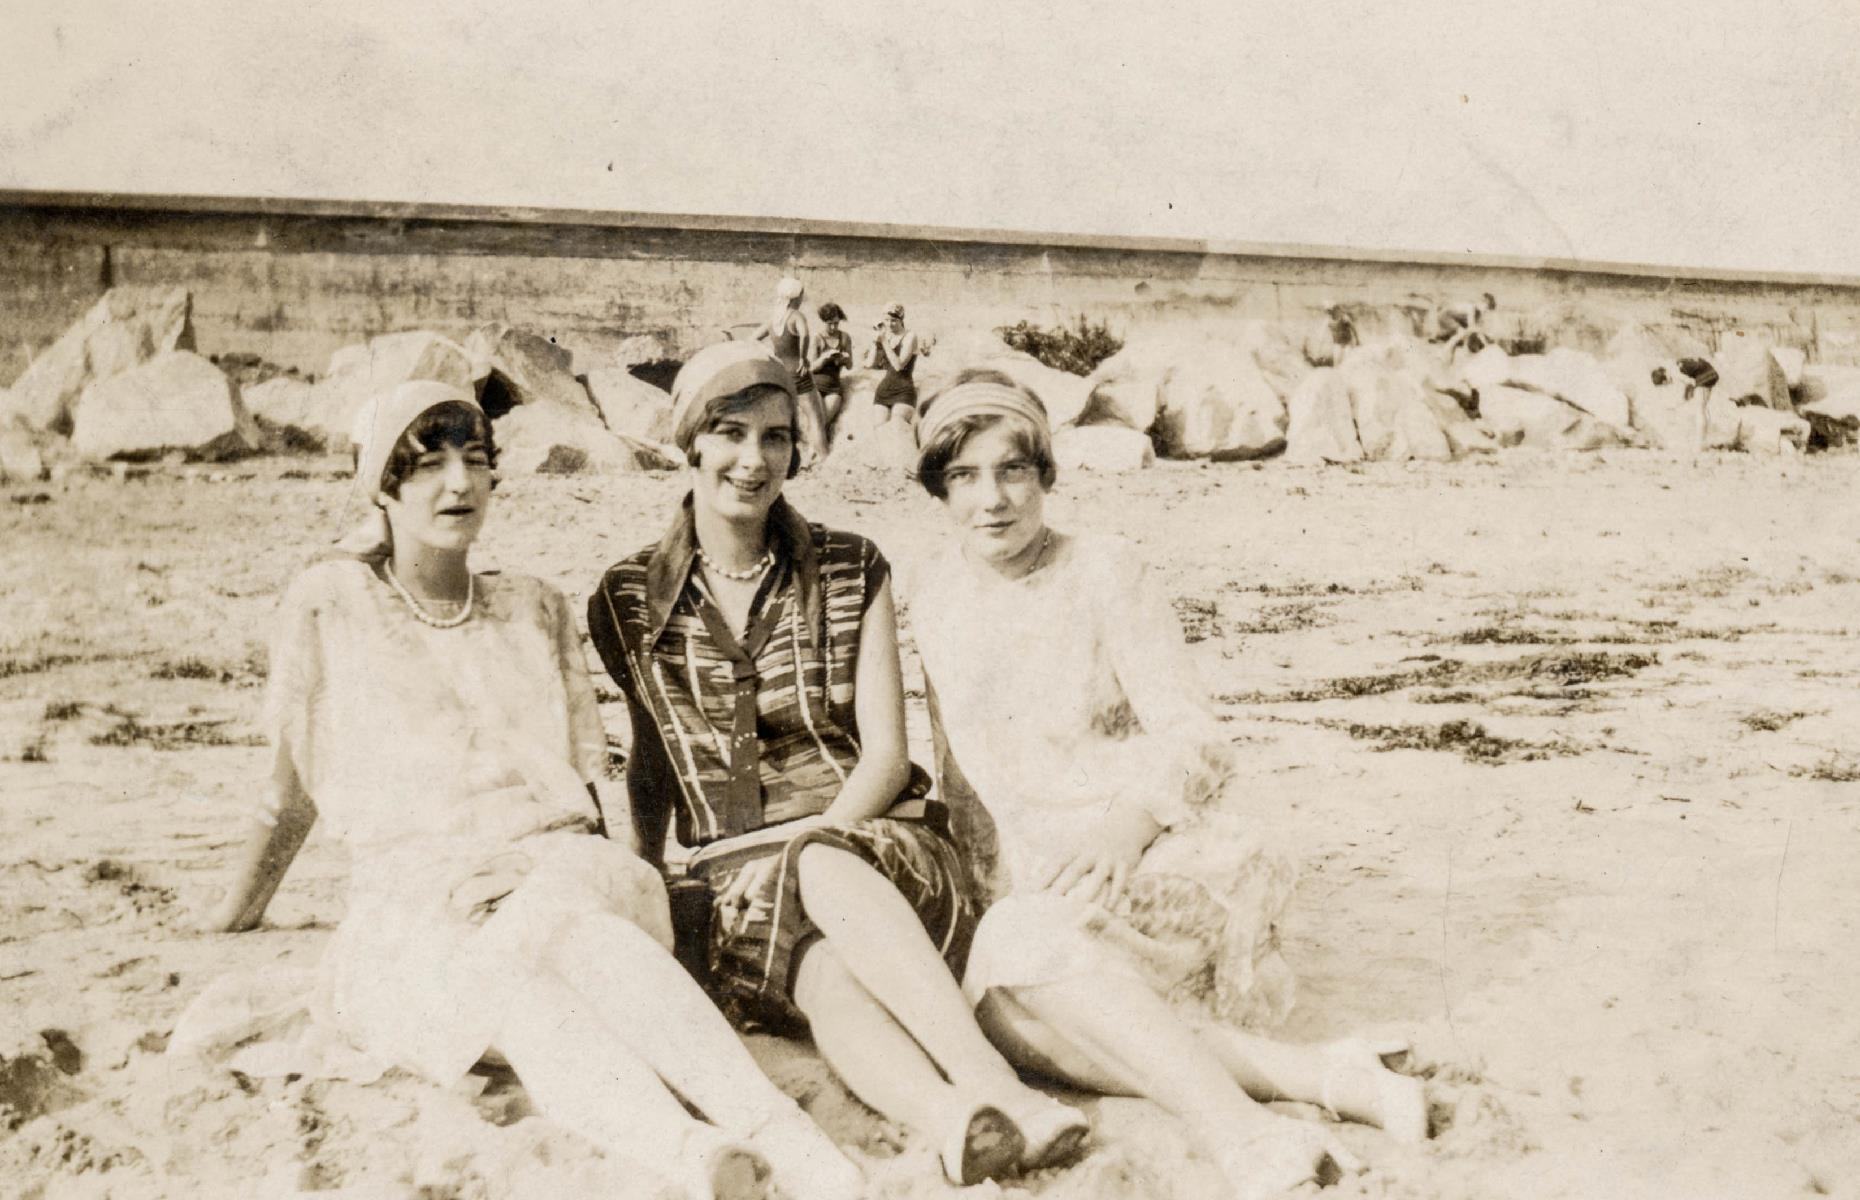 Slide 11 of 35: Despite the (perhaps surprising) appetite for post-war and post-pandemic travel, it remained the domain of the most privileged in society – and even they tended to stay close to home shores. Here three well-heeled, well-dressed women enjoy the sunshine on a beach in Massachusetts in the 1920s.